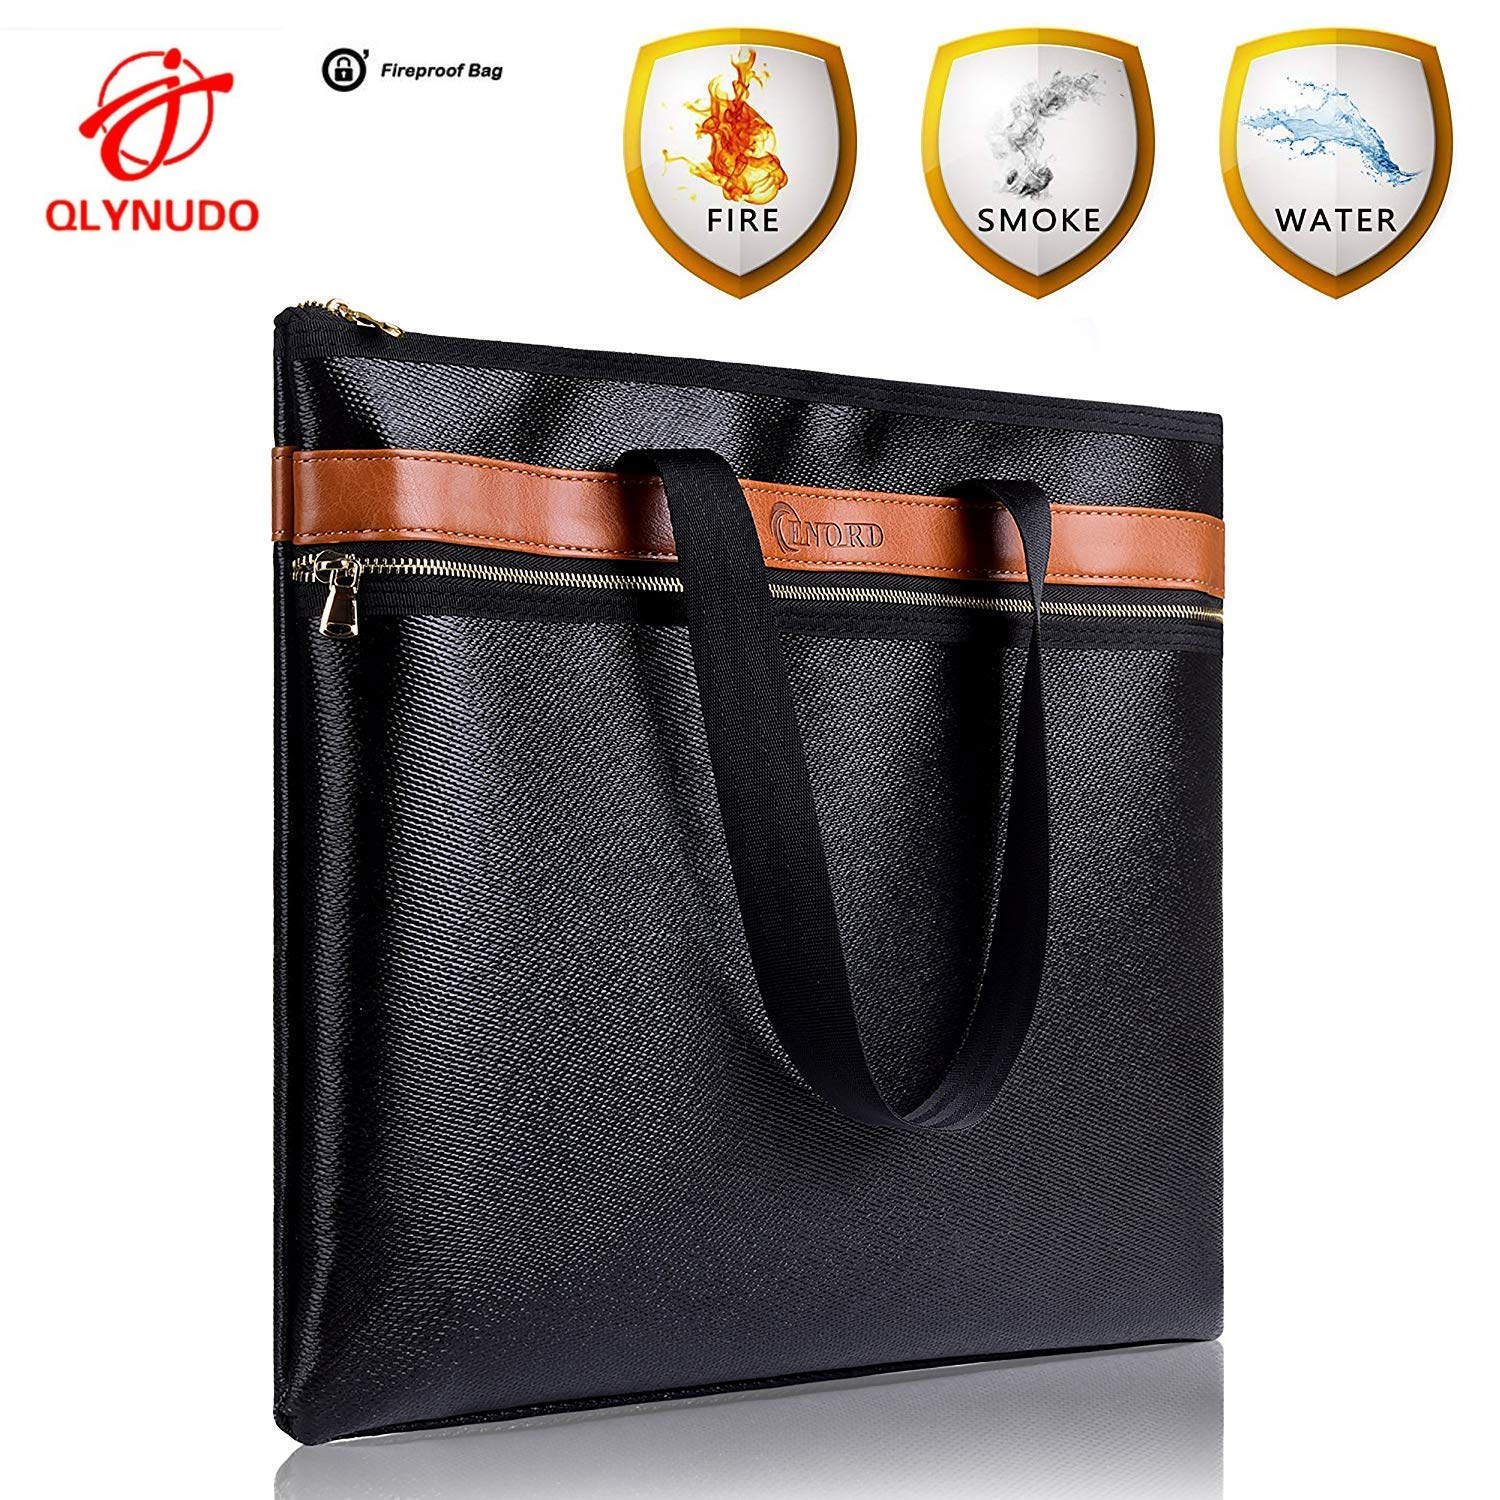 FIRESAFE Large Fireproof Safe Document Bag 15''x12''x2'' 2300°F   Double Layers  Zipper Closure  Silicone Coated  Non-Itchy  Certificated Fire Resistant Bag for Valuables (Black)